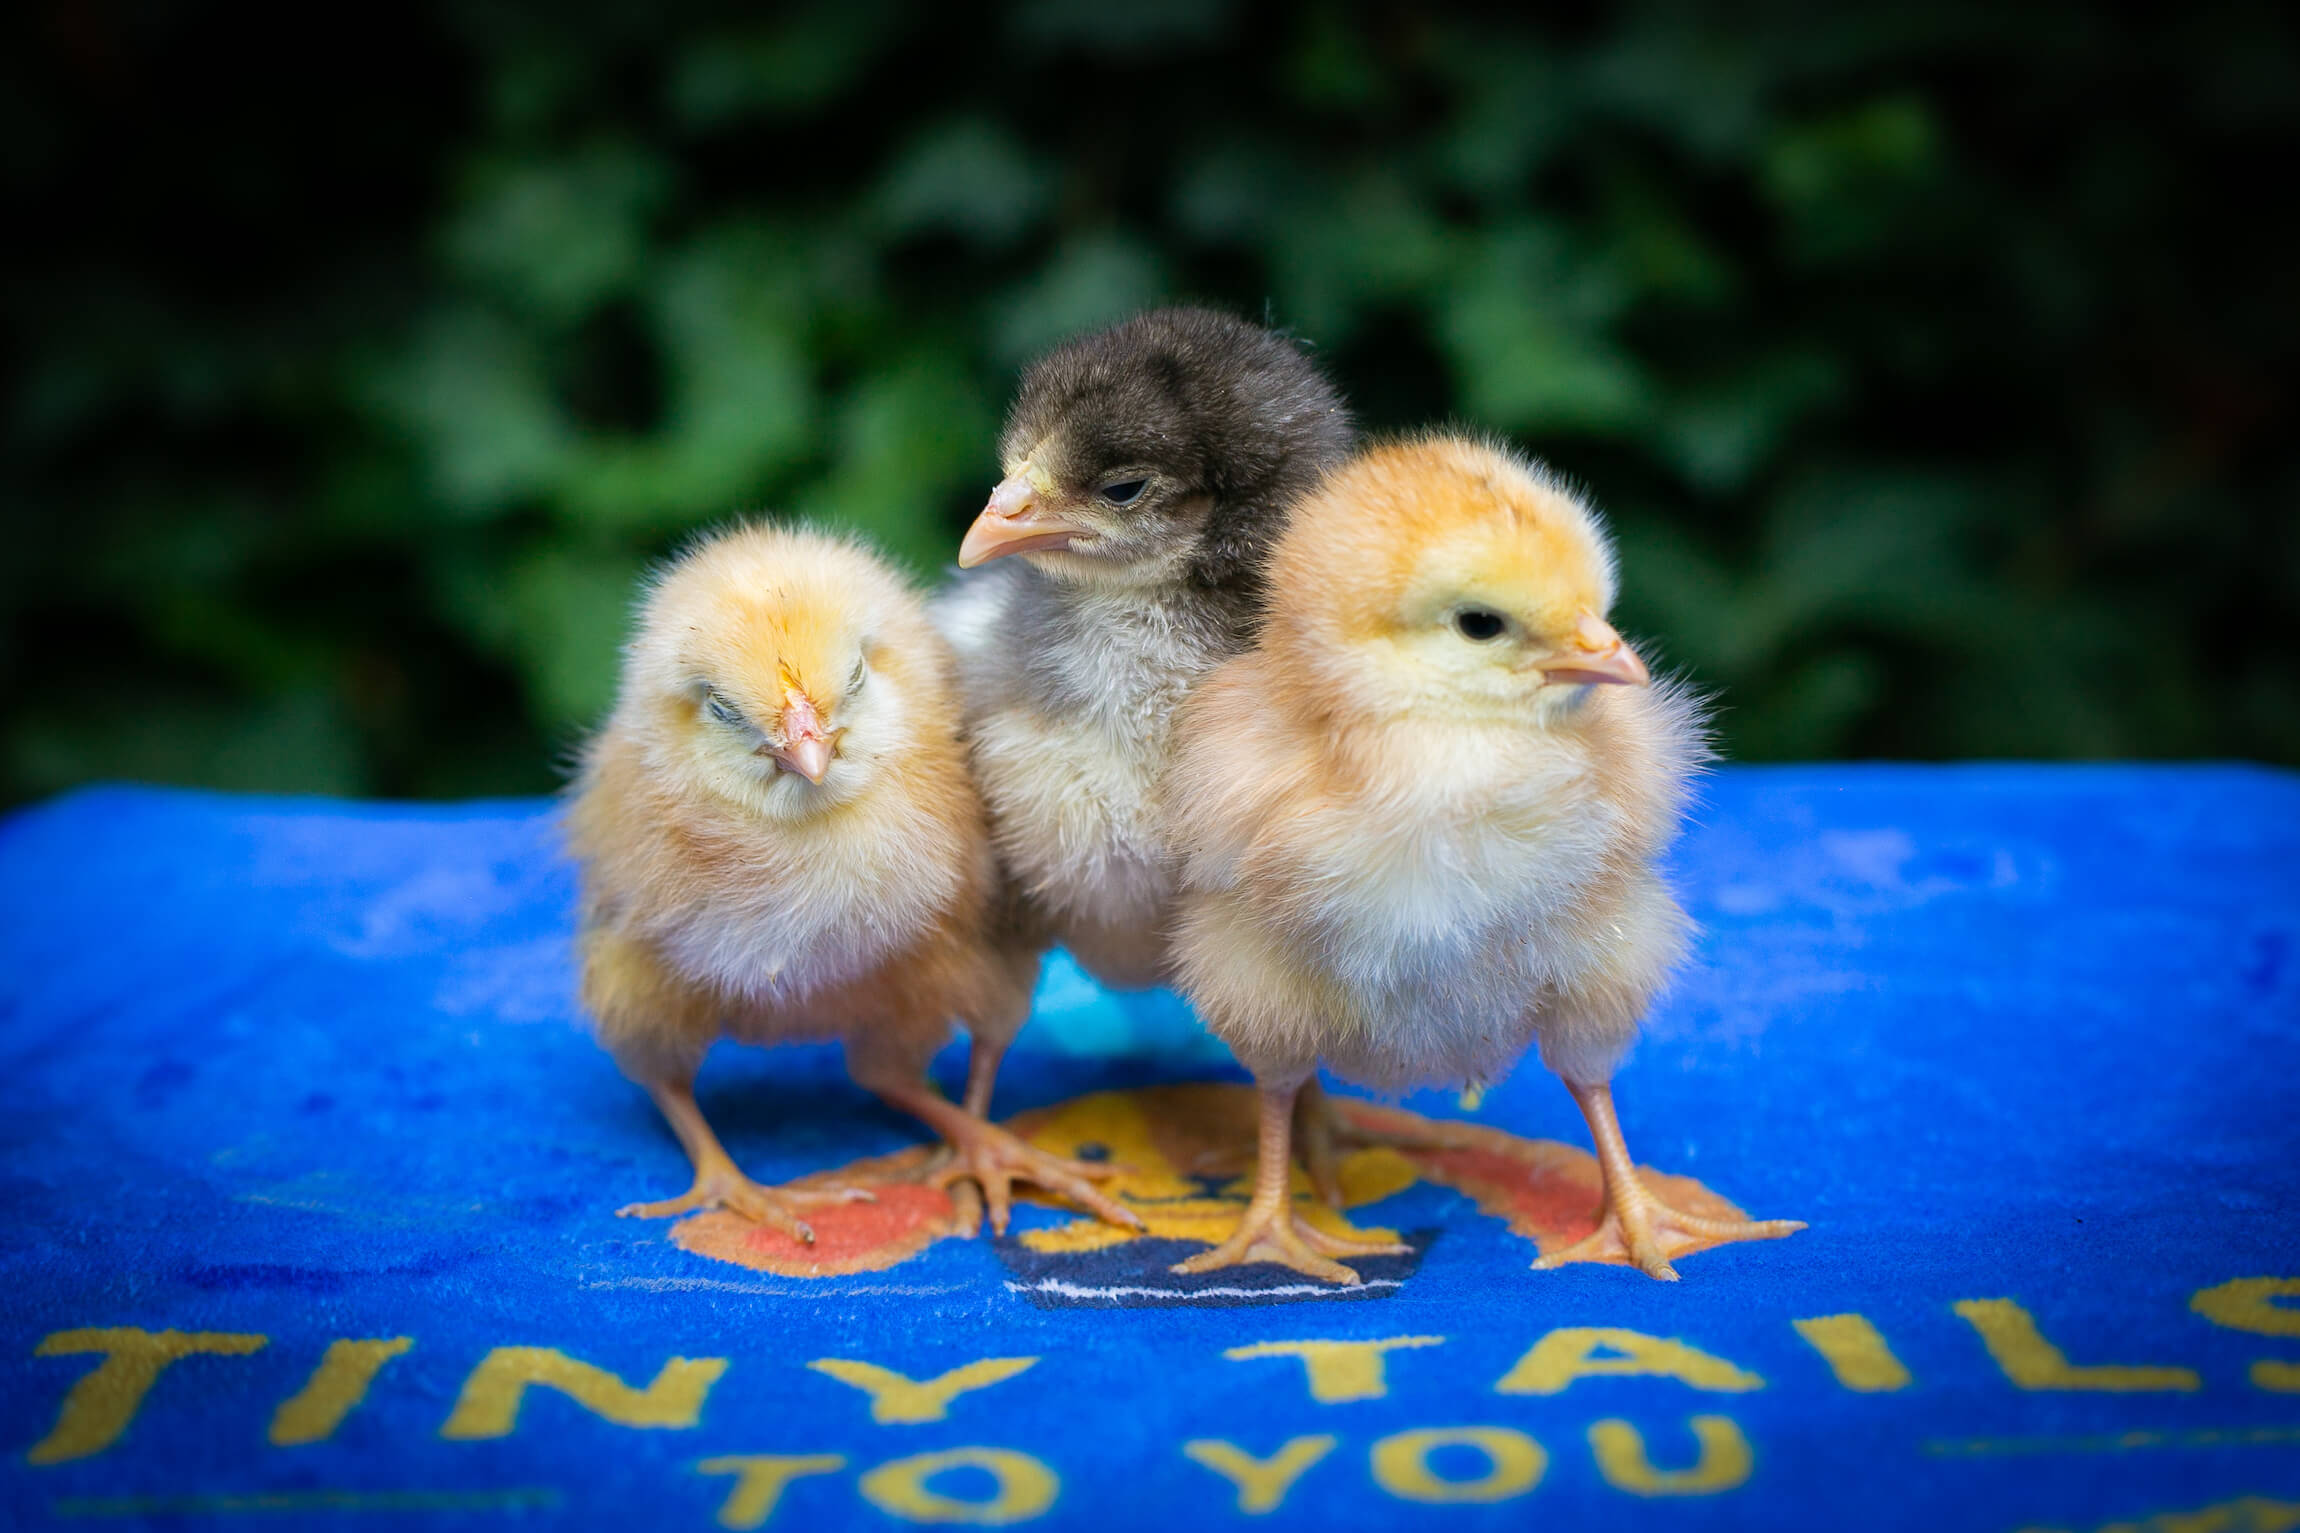 Chicks on a mat